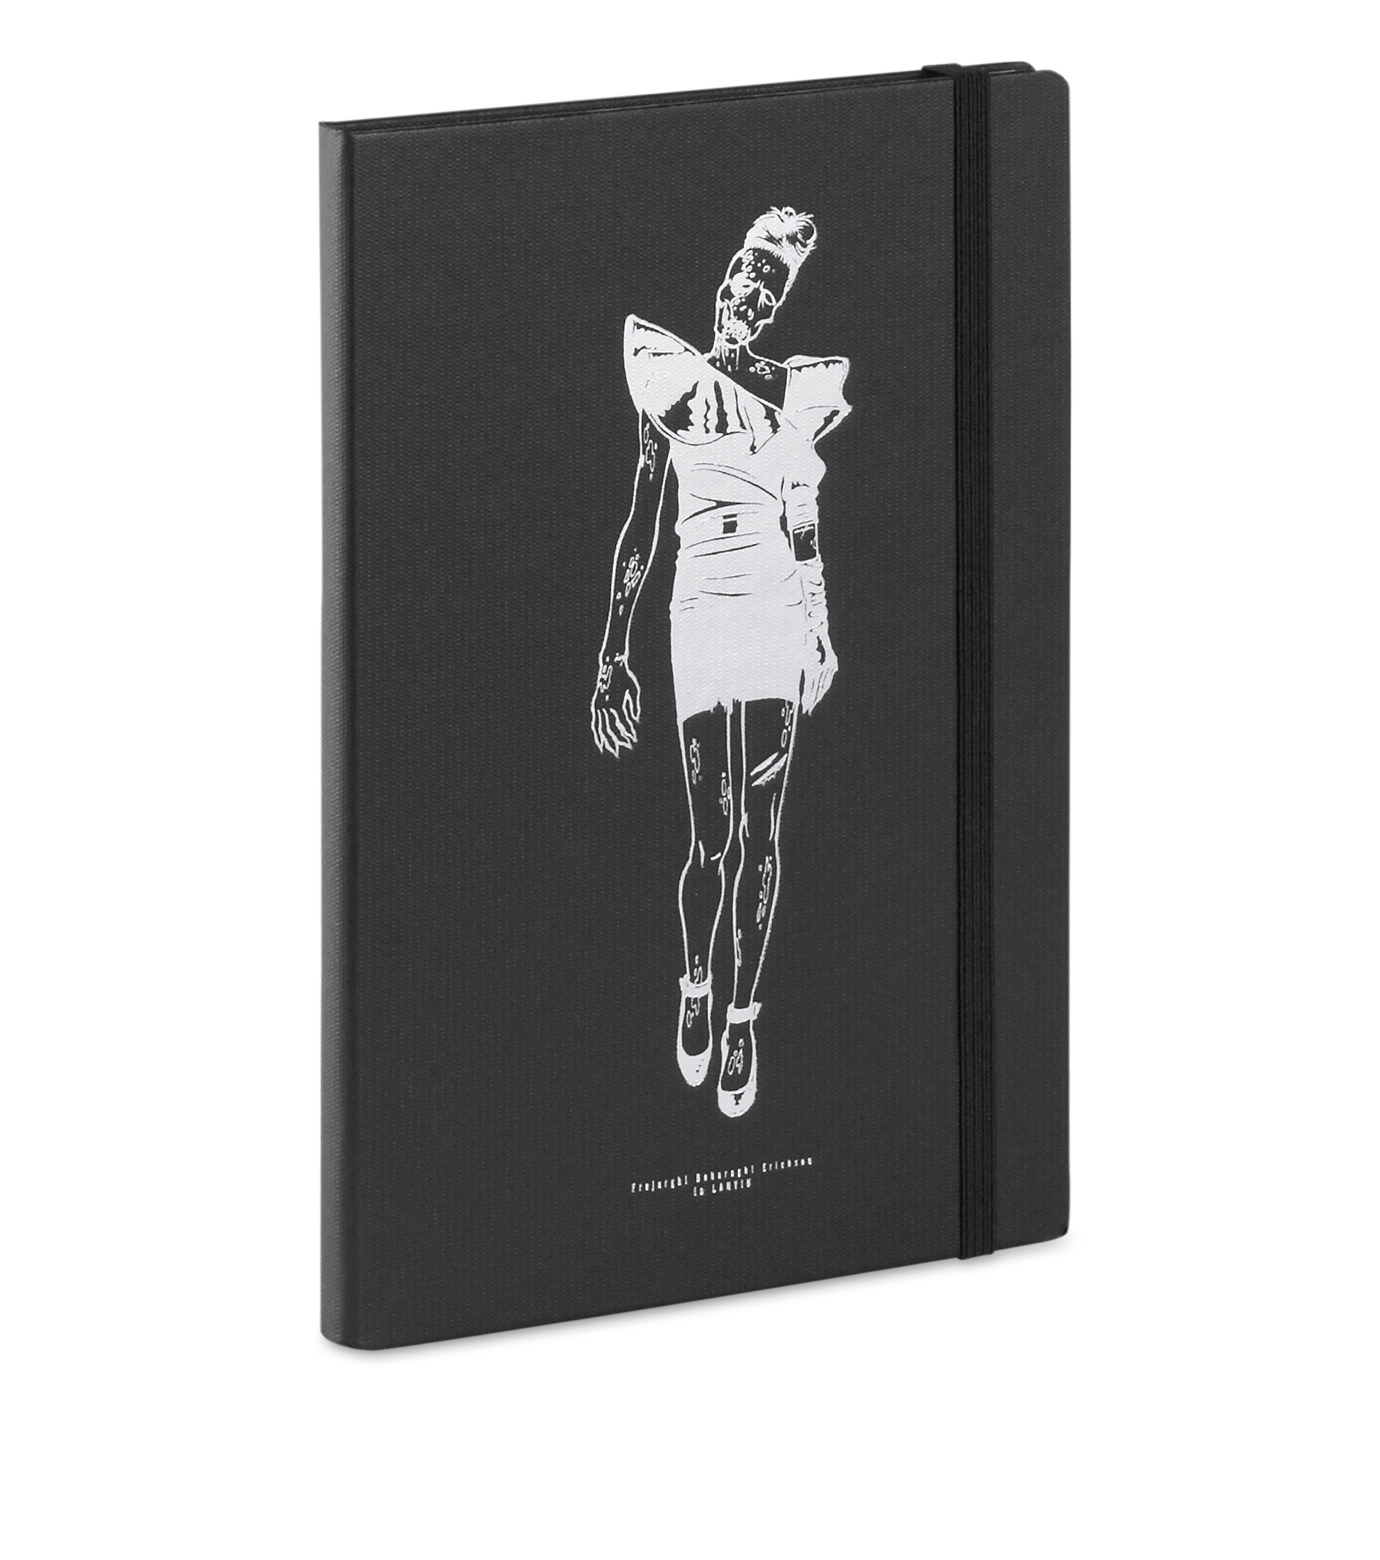 Fashematical(ファシェマティカル)のNote book-NONE(OTHER-GOODS/OTHER-GOODS)-Note-Lanvin 拡大詳細画像2